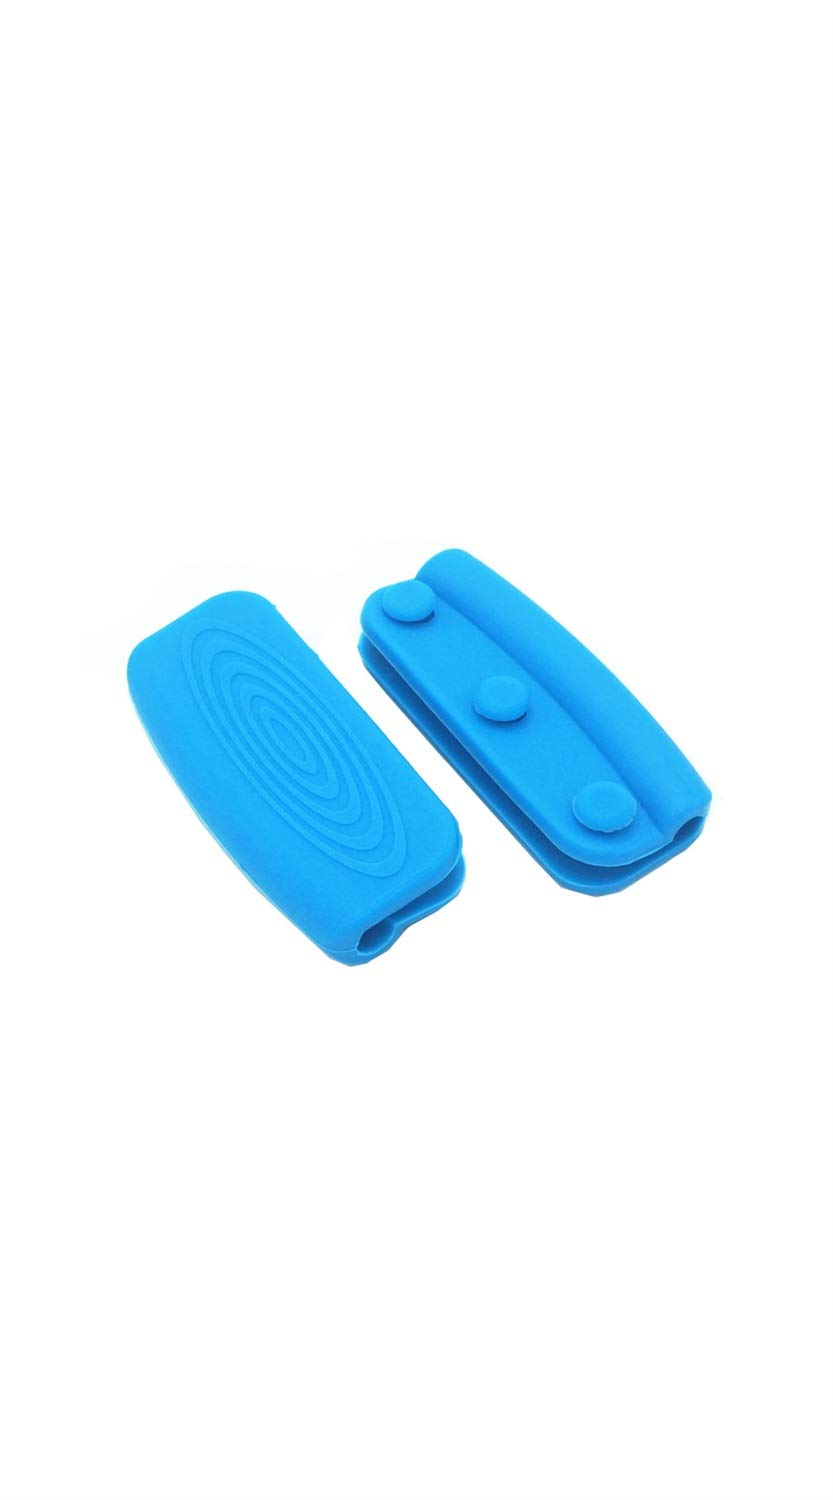 TYZP Silicone Hot Pot Handle Cover Insulation Non-Slip Pot Holder Grip with Button Fixed (Color : Blue) by TYZP